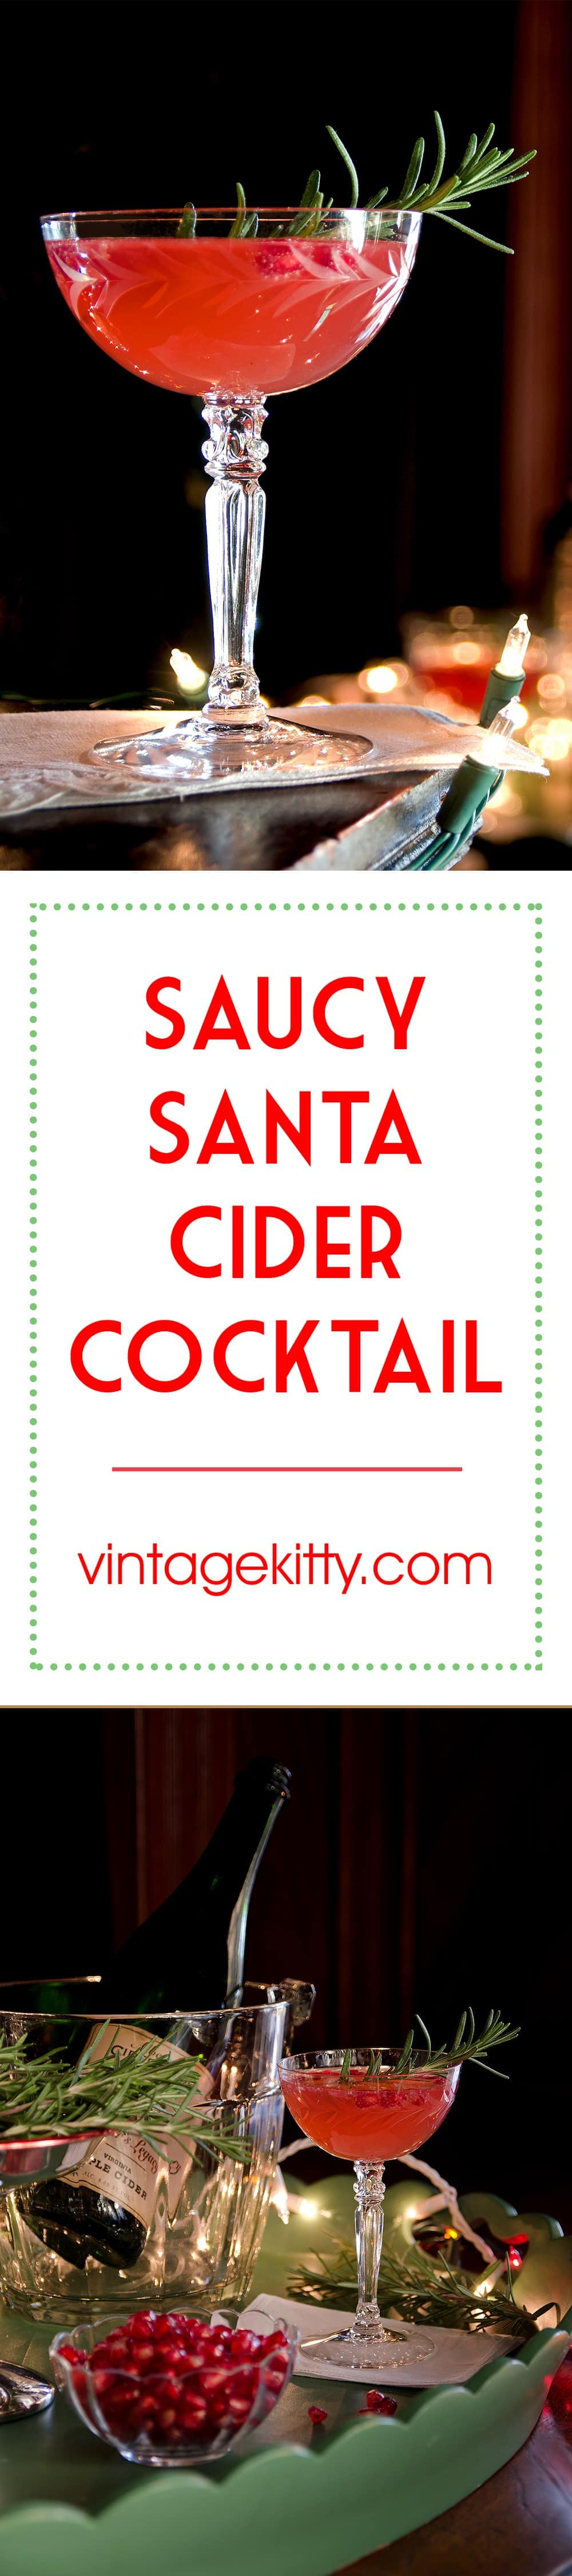 Saucy Santa Cider Cocktail tastes like Christmas! Bubbly hard cider, fresh pomegranate seeds and springs of rosemary come together to make a festive holiday drink. Let's toast to the season! | vintagekitty.com